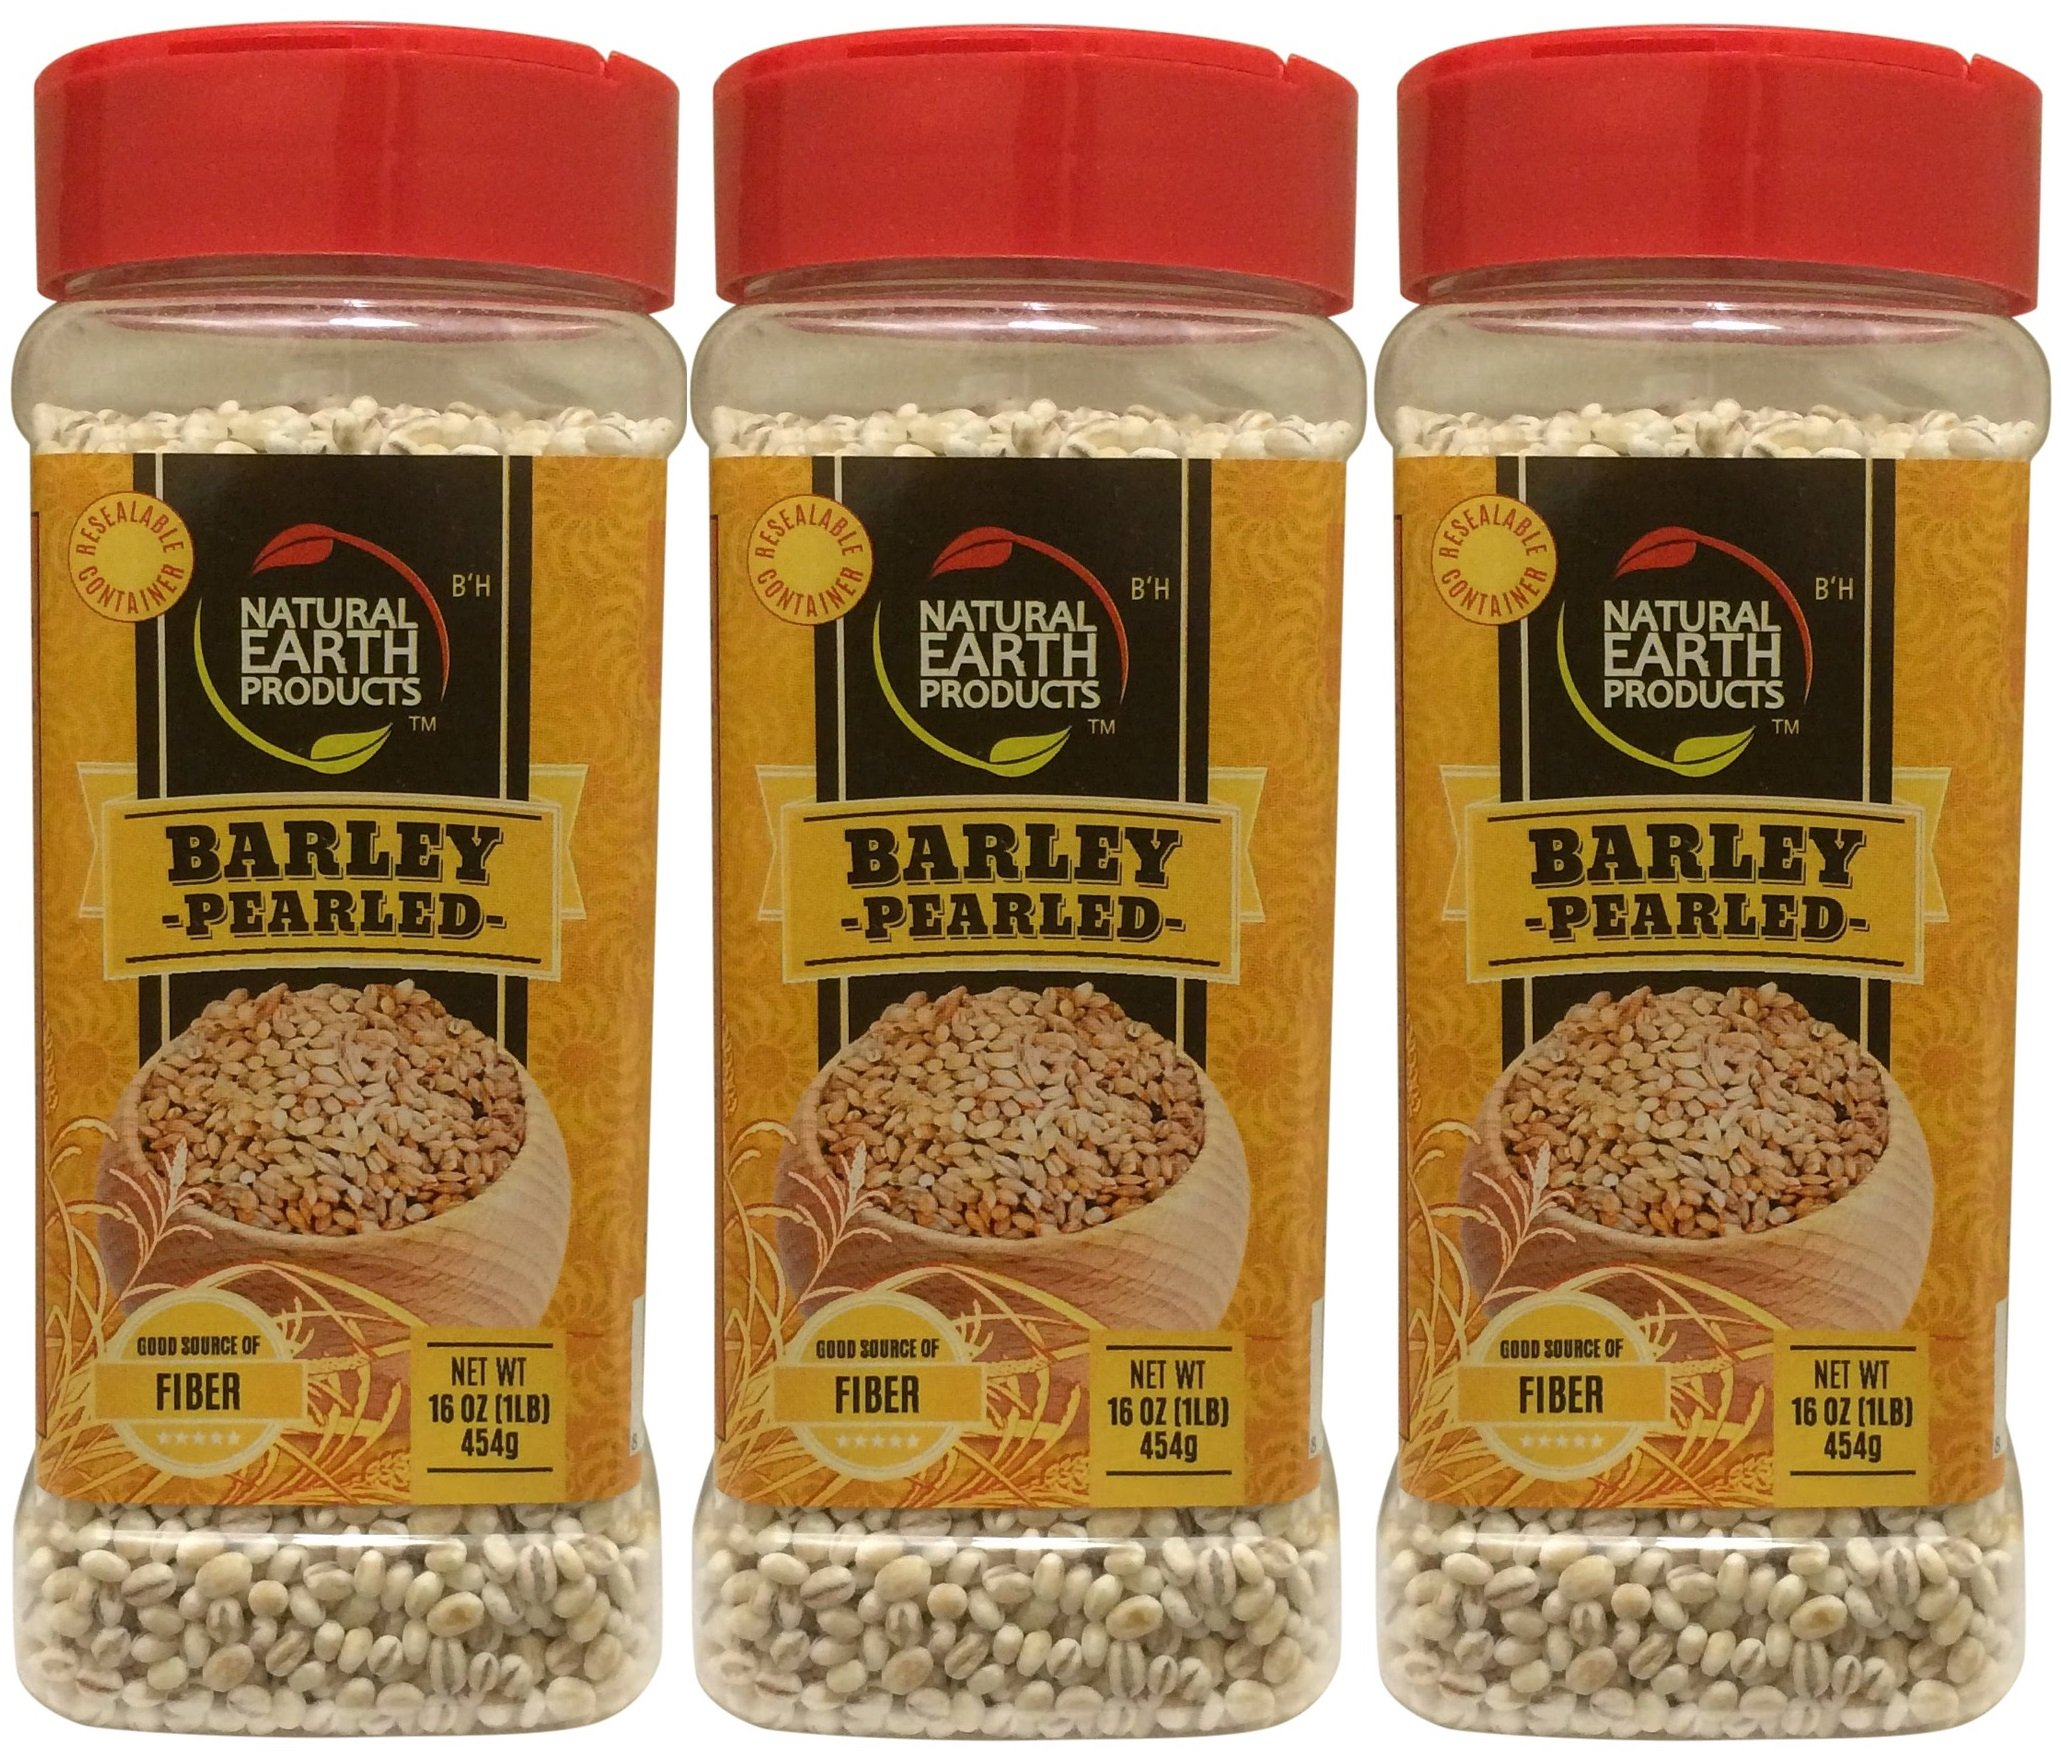 Natural Earth Barley Pearled - Certified Kosher- Good Source Of Fiber - Resealable Container - 16 Oz (Pack of 3)